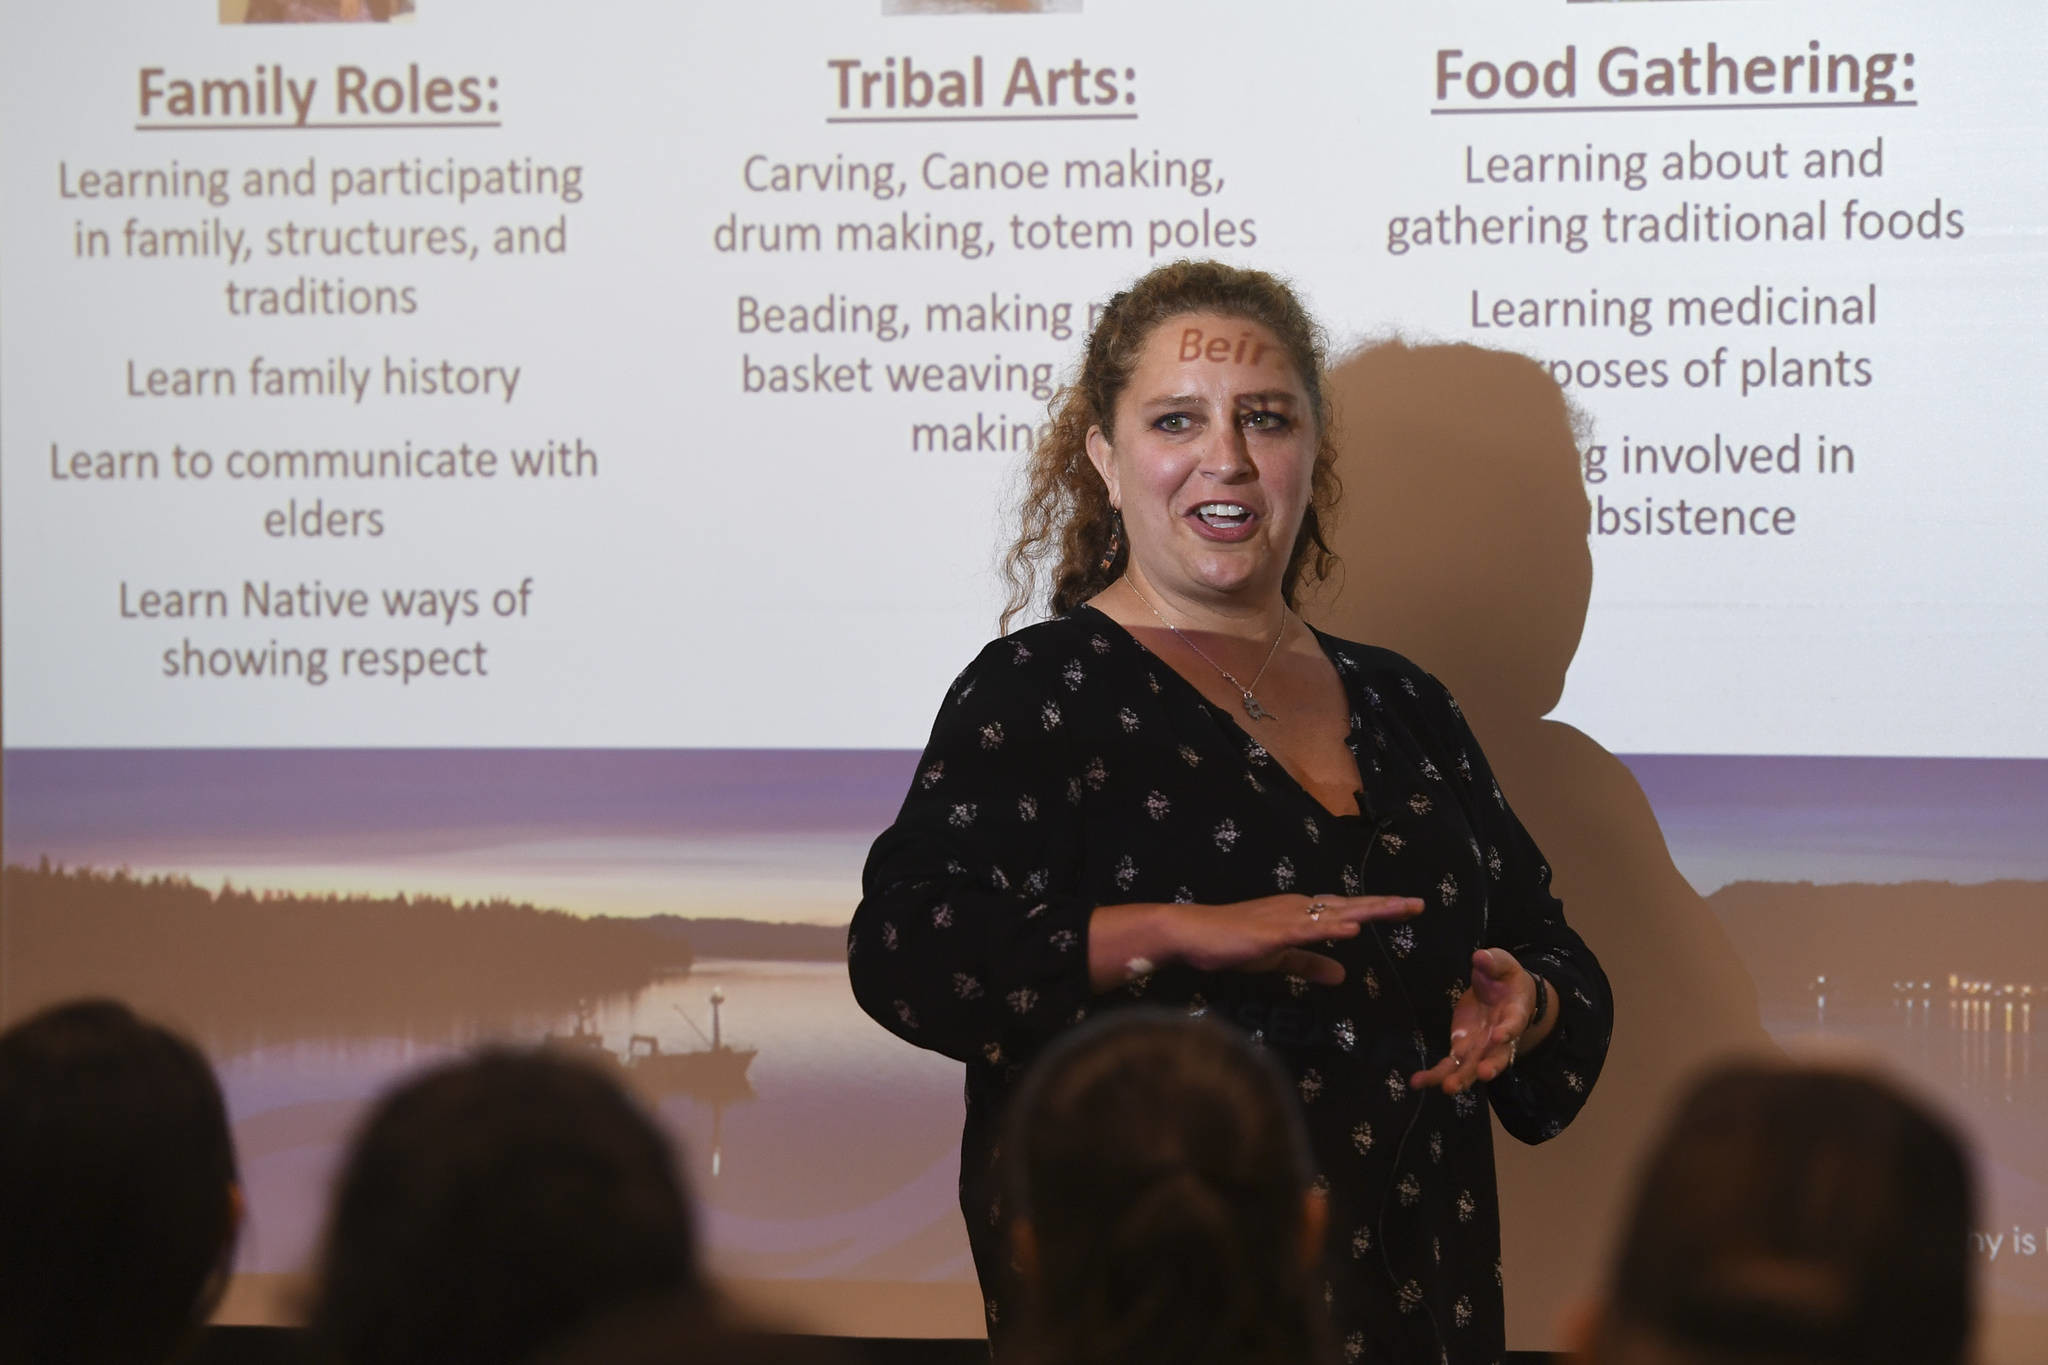 Brenda Thayer, a mental health counselor for SEARHC, speaks of trauma in Native communities during a speech at the Walter Soboleff Center on Tuesday, July 23, 2019. (Michael Penn | Juneau Empire)